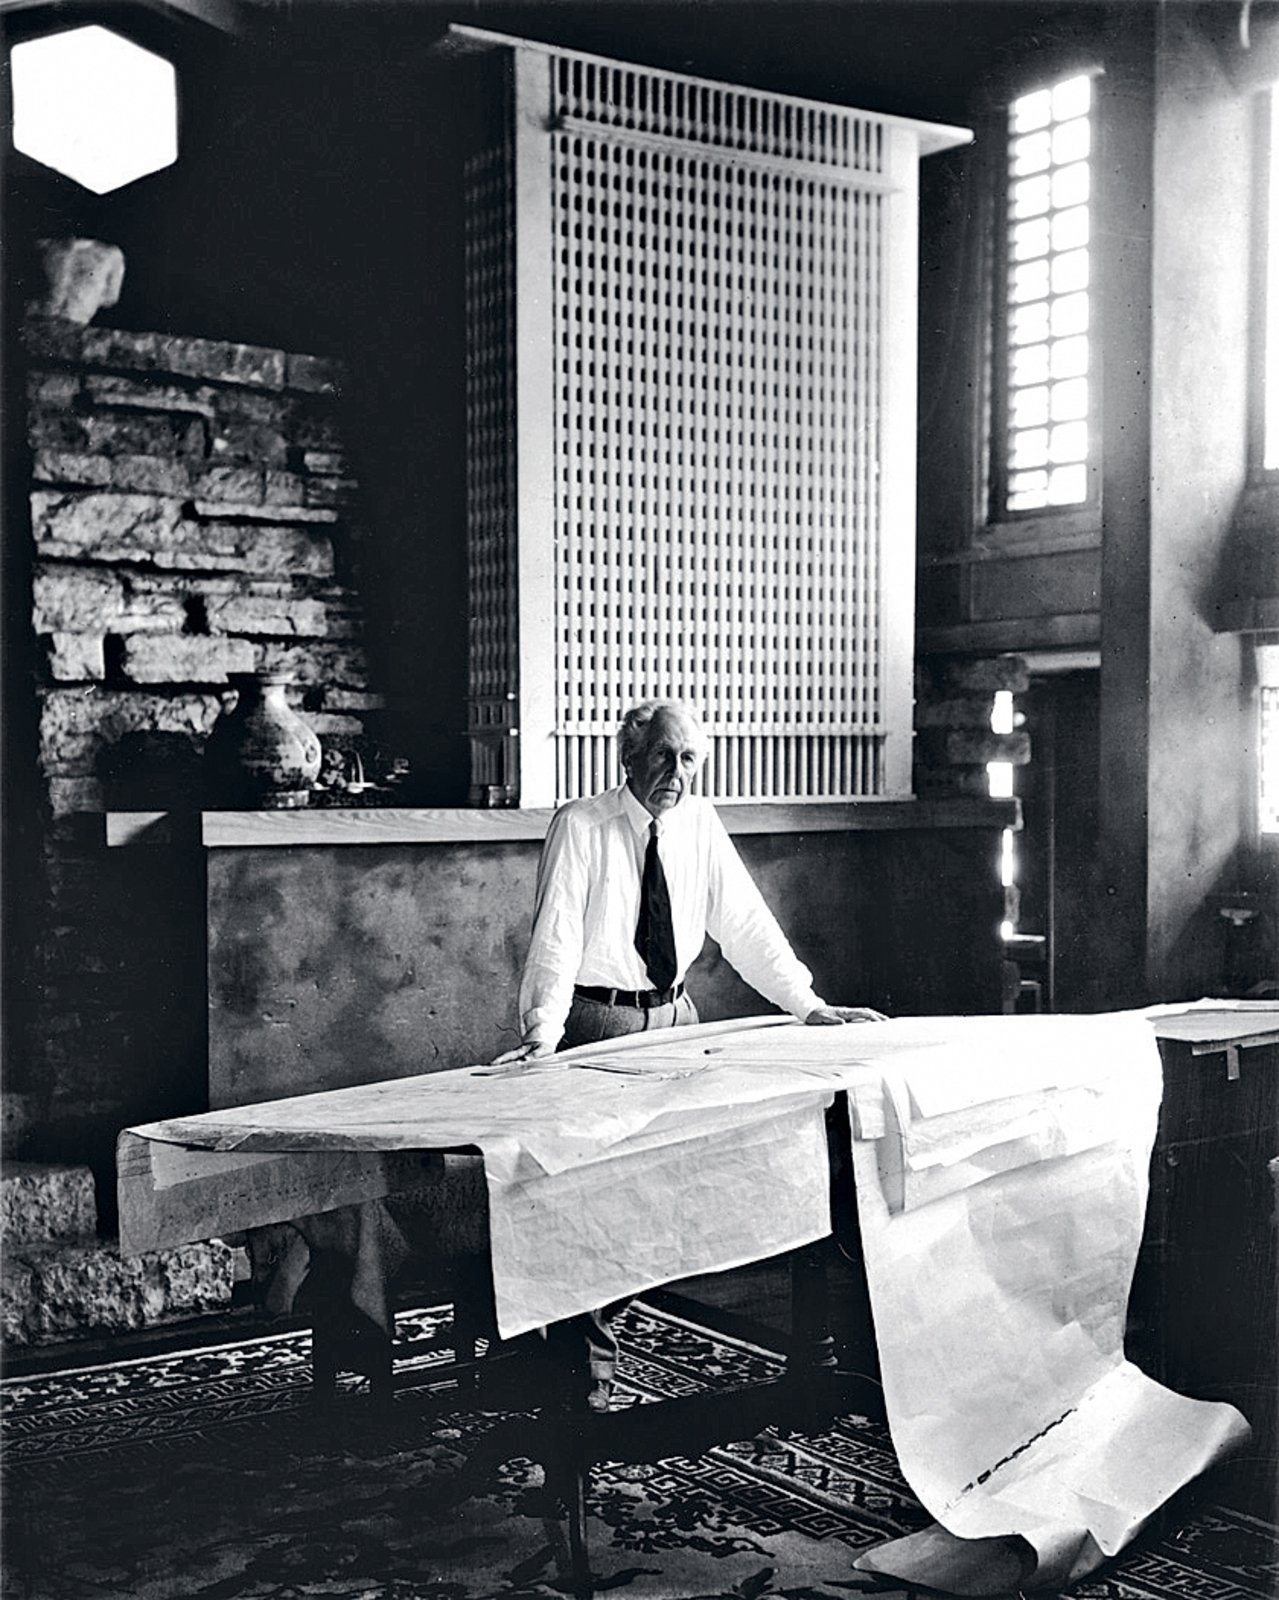 Photo 1 of 11 in Dwell Reflects on Frank Lloyd Wright in Honor of the 150th Anniversary of His Birth